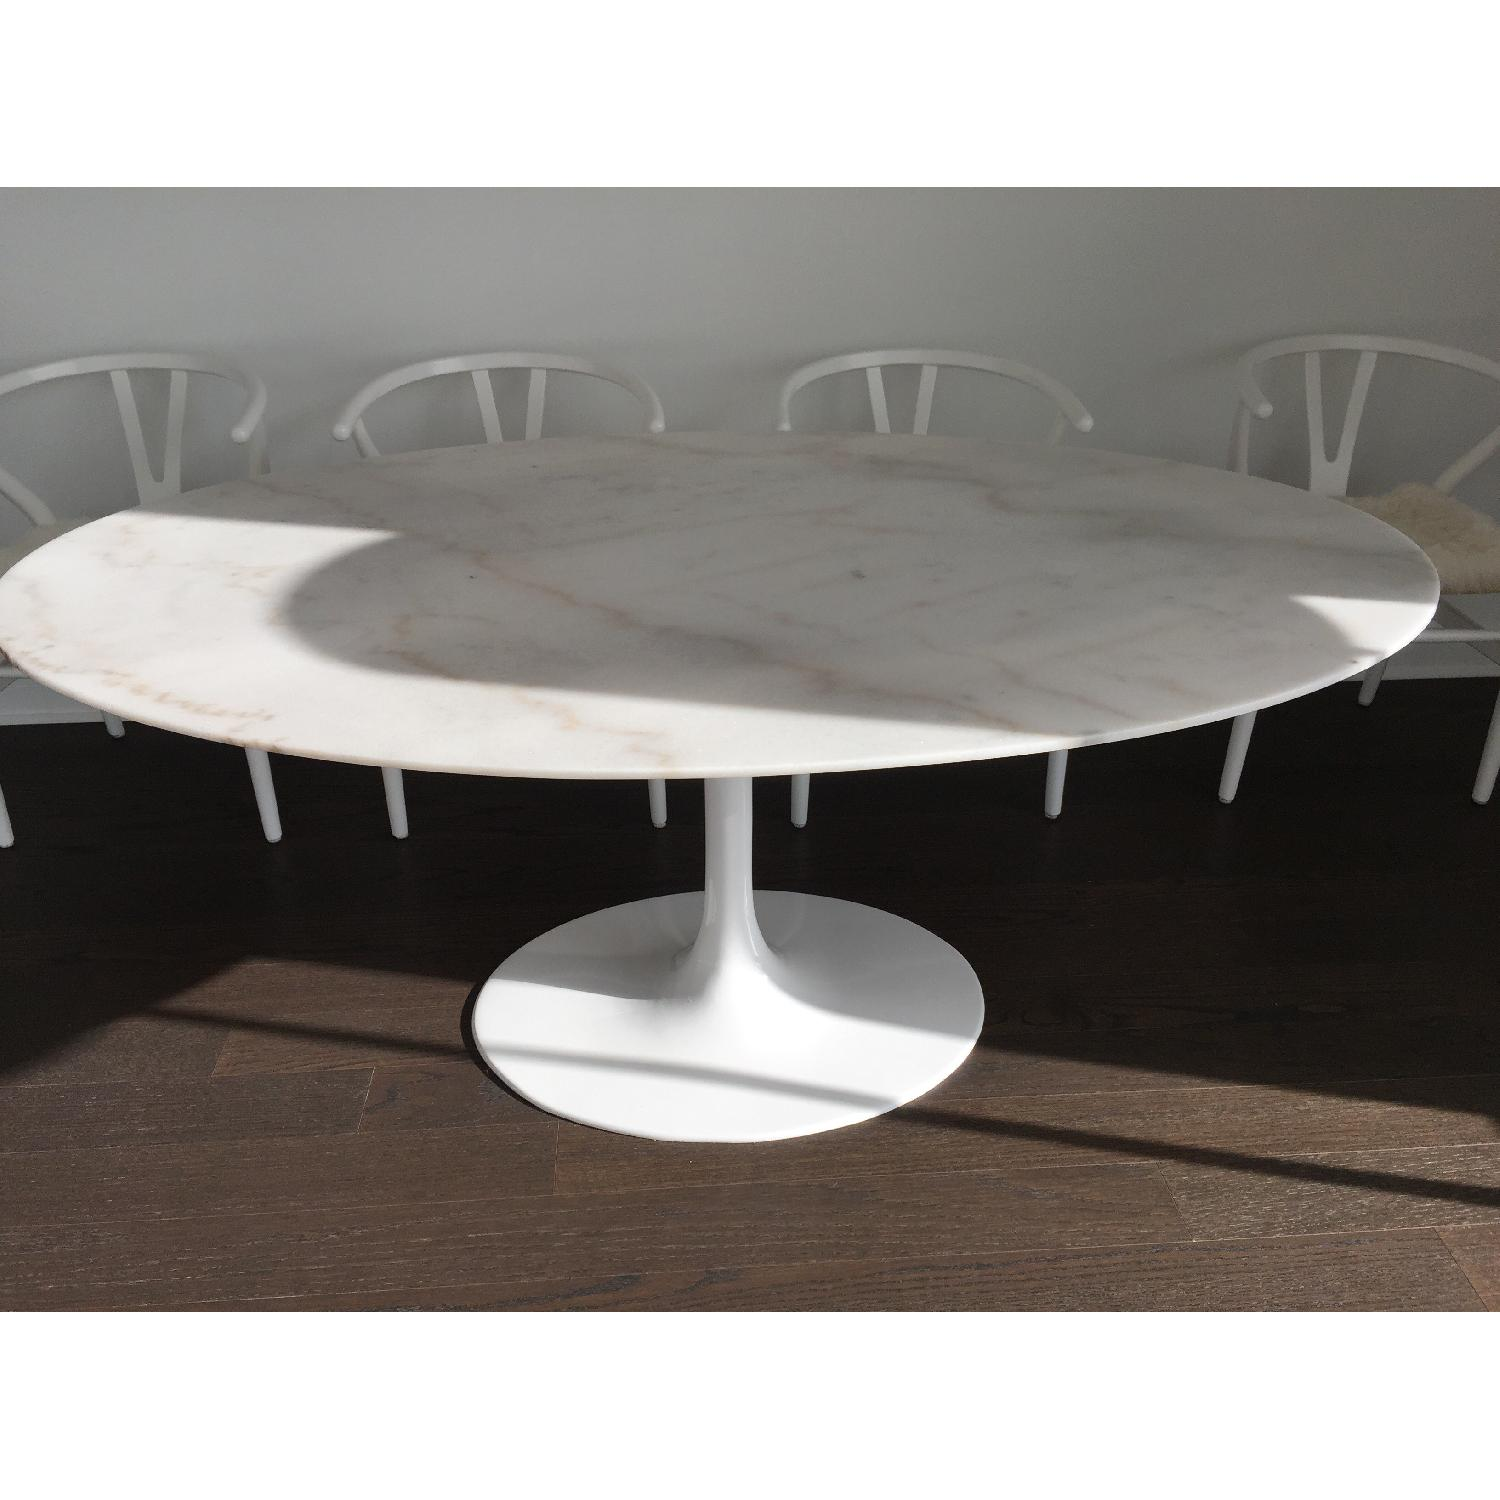 Rove Concepts Oval Tulip Table - image-4